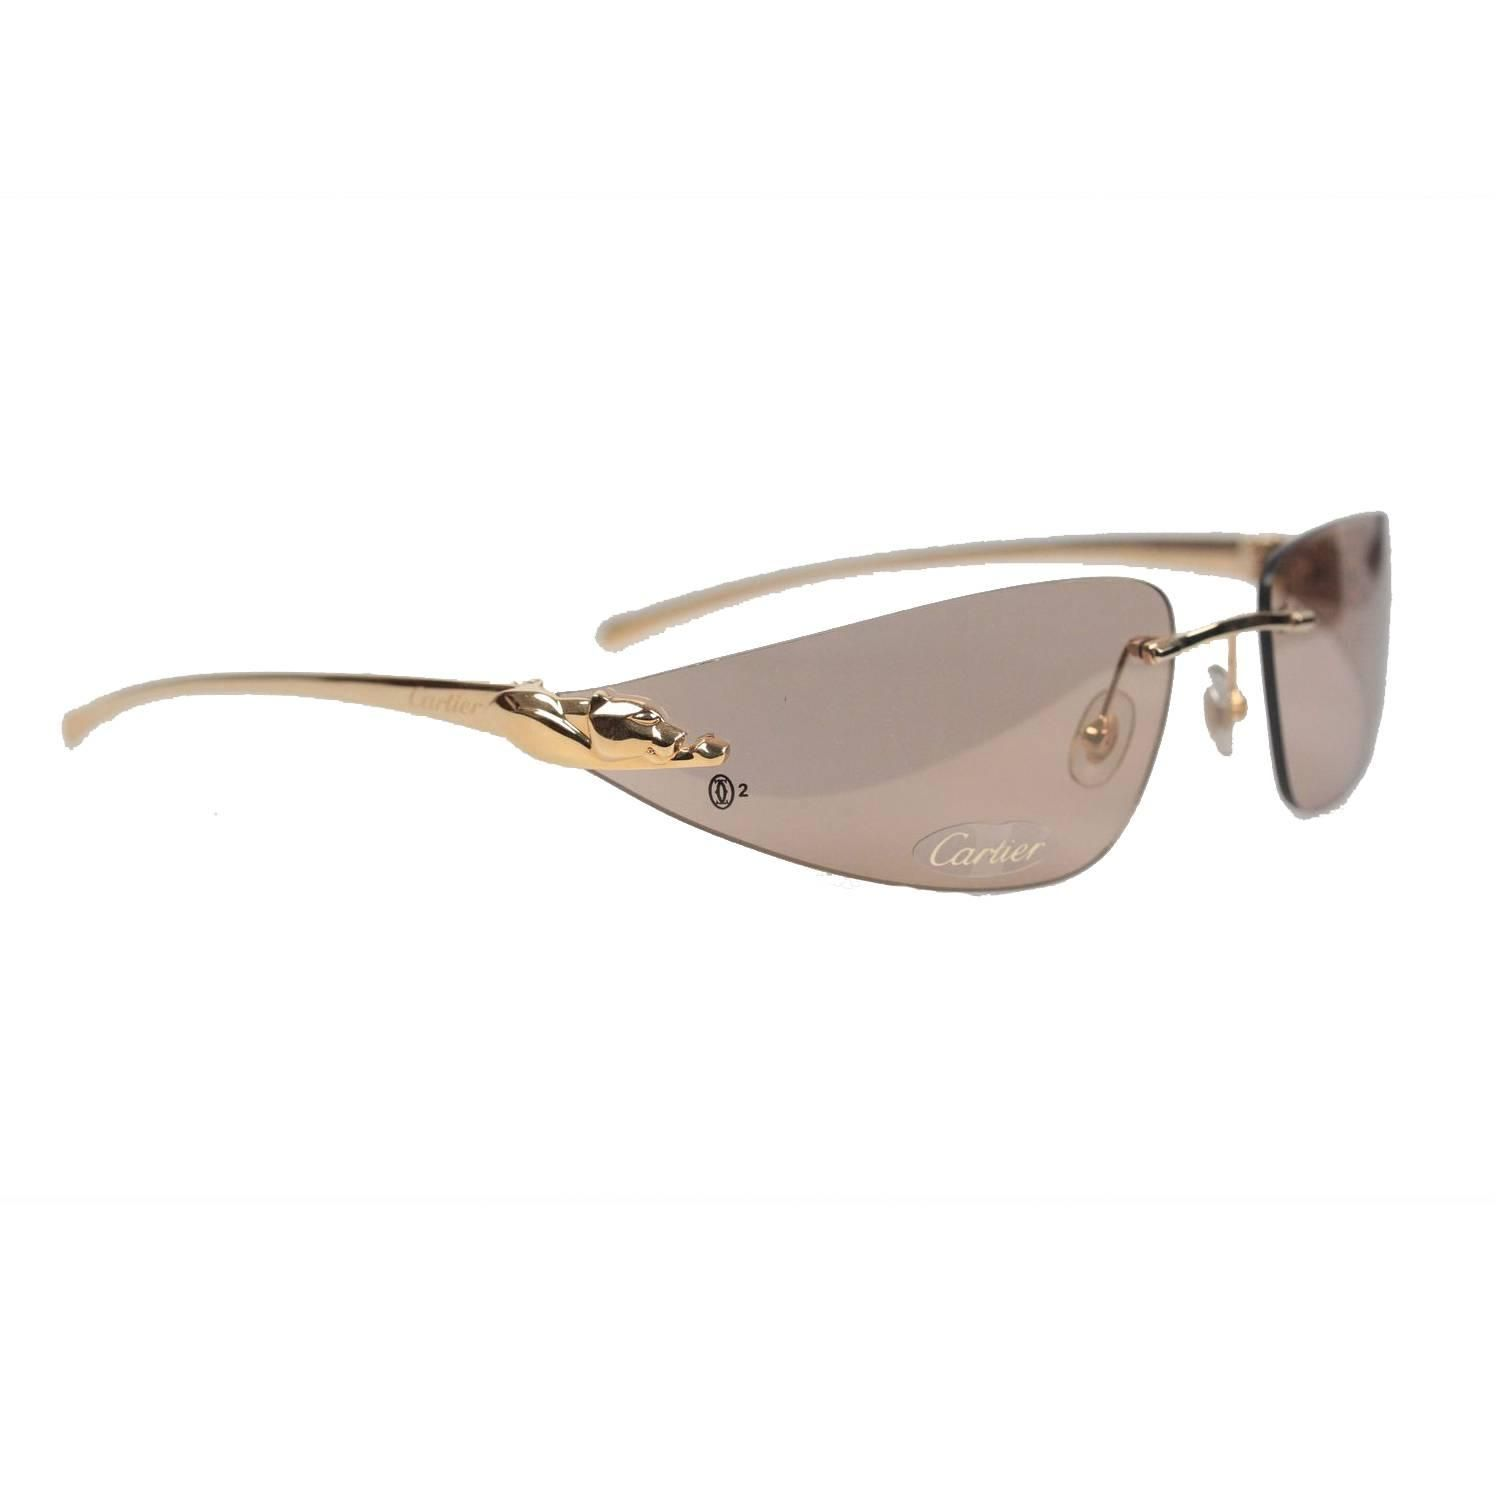 e92e458db5 Cartier Paris Sunglasses Panthere T8200611 Gold Brown 110 For Sale at  1stdibs